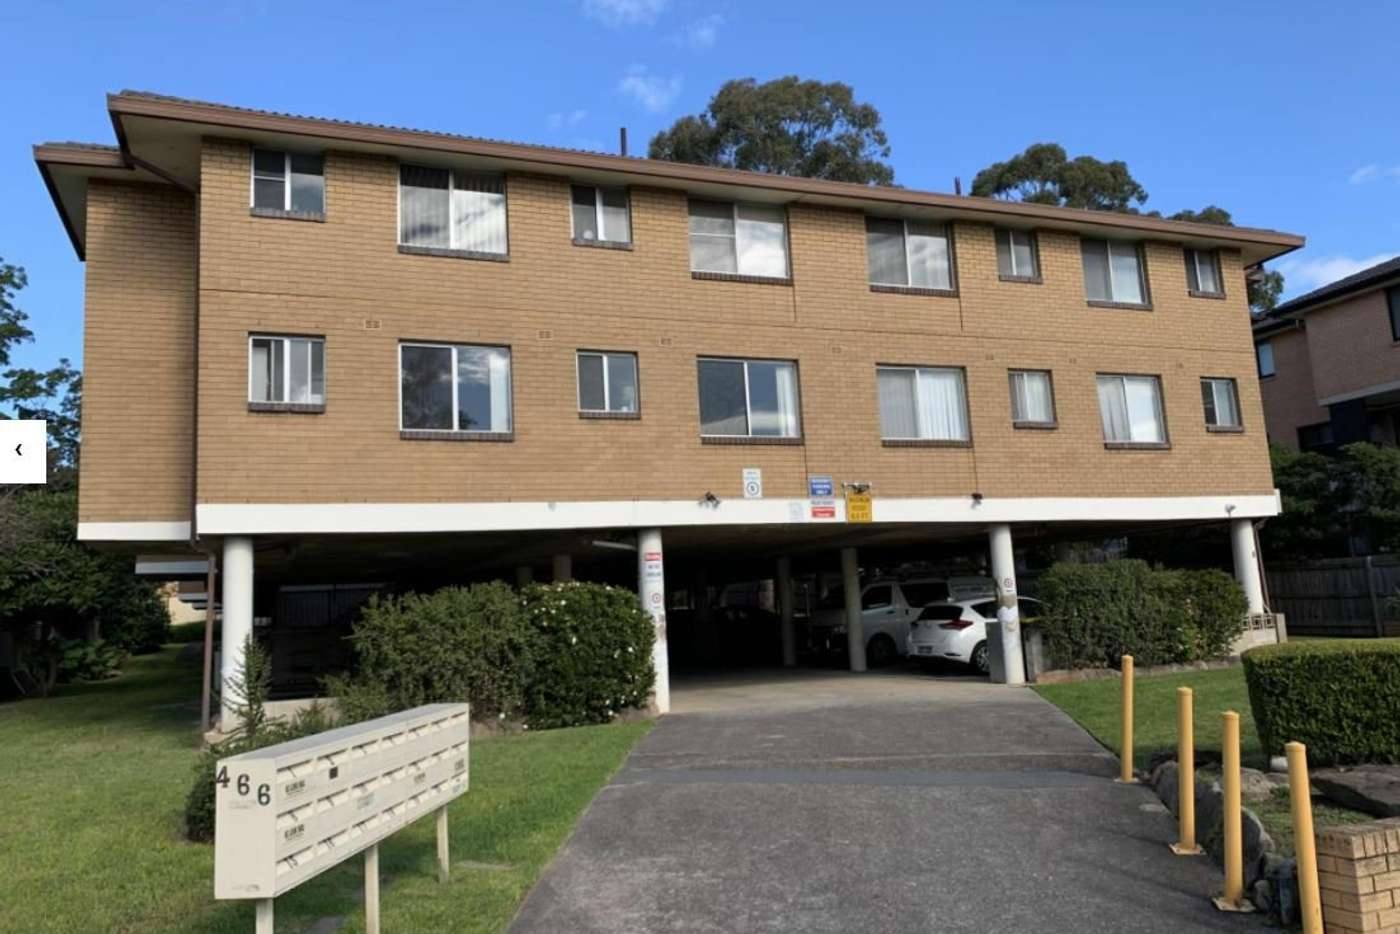 Main view of Homely unit listing, 20/466 Guildford Road, Guildford NSW 2161